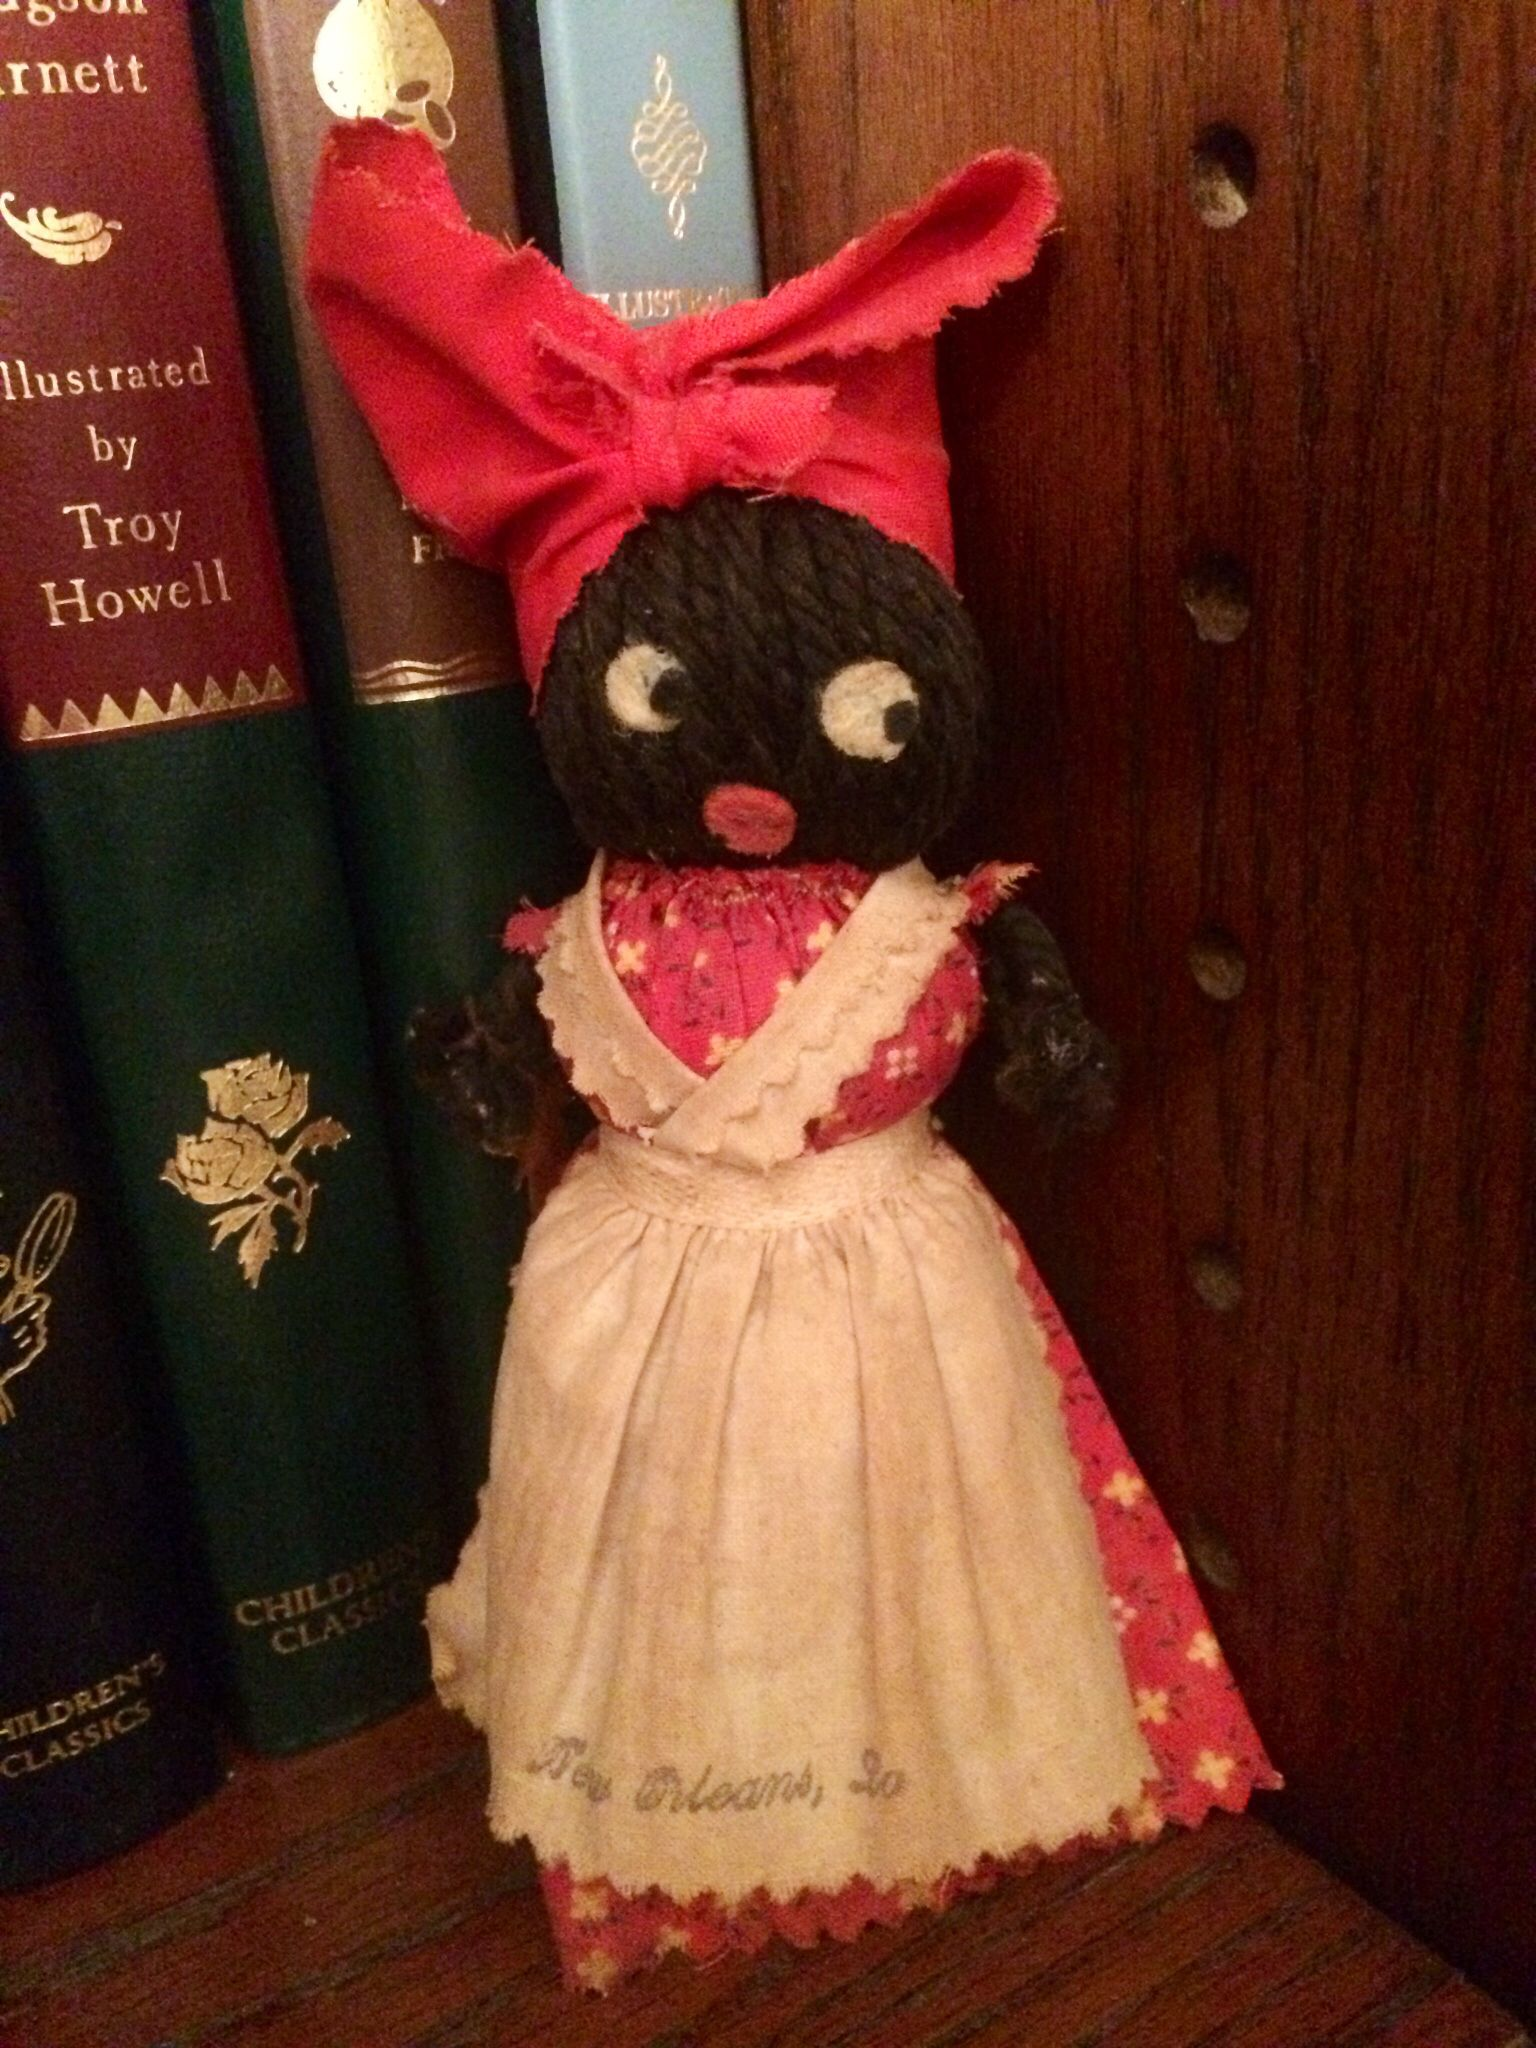 Doll these were sold in new orleans in the 1960s at